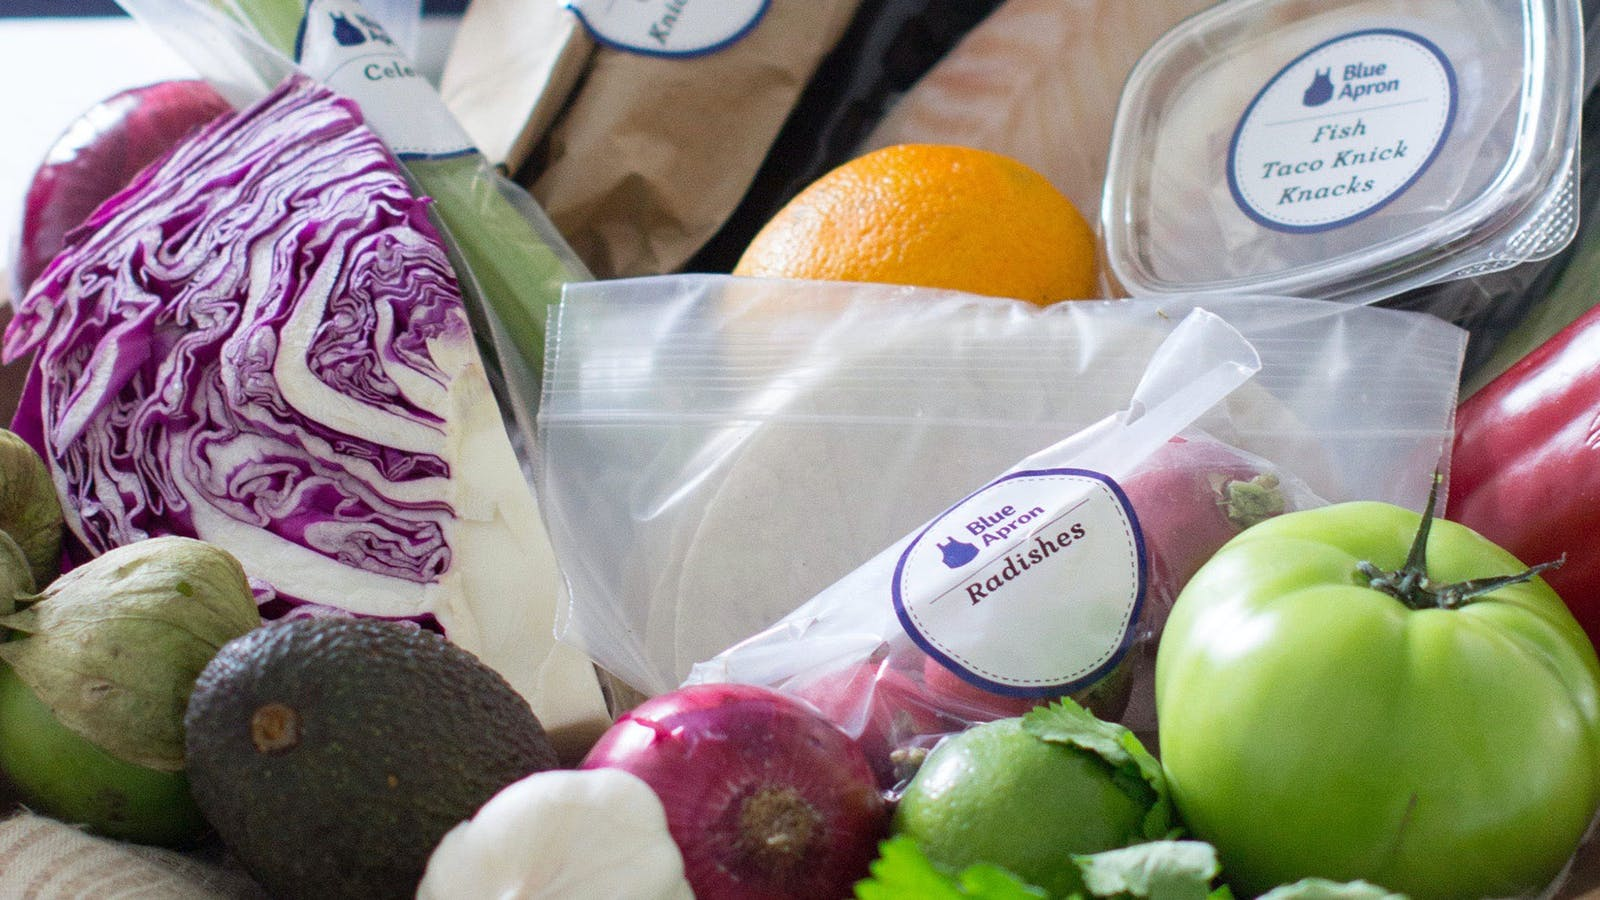 Blue Apron provides fresh ingredients for cooking. Photo by The Associated Press.